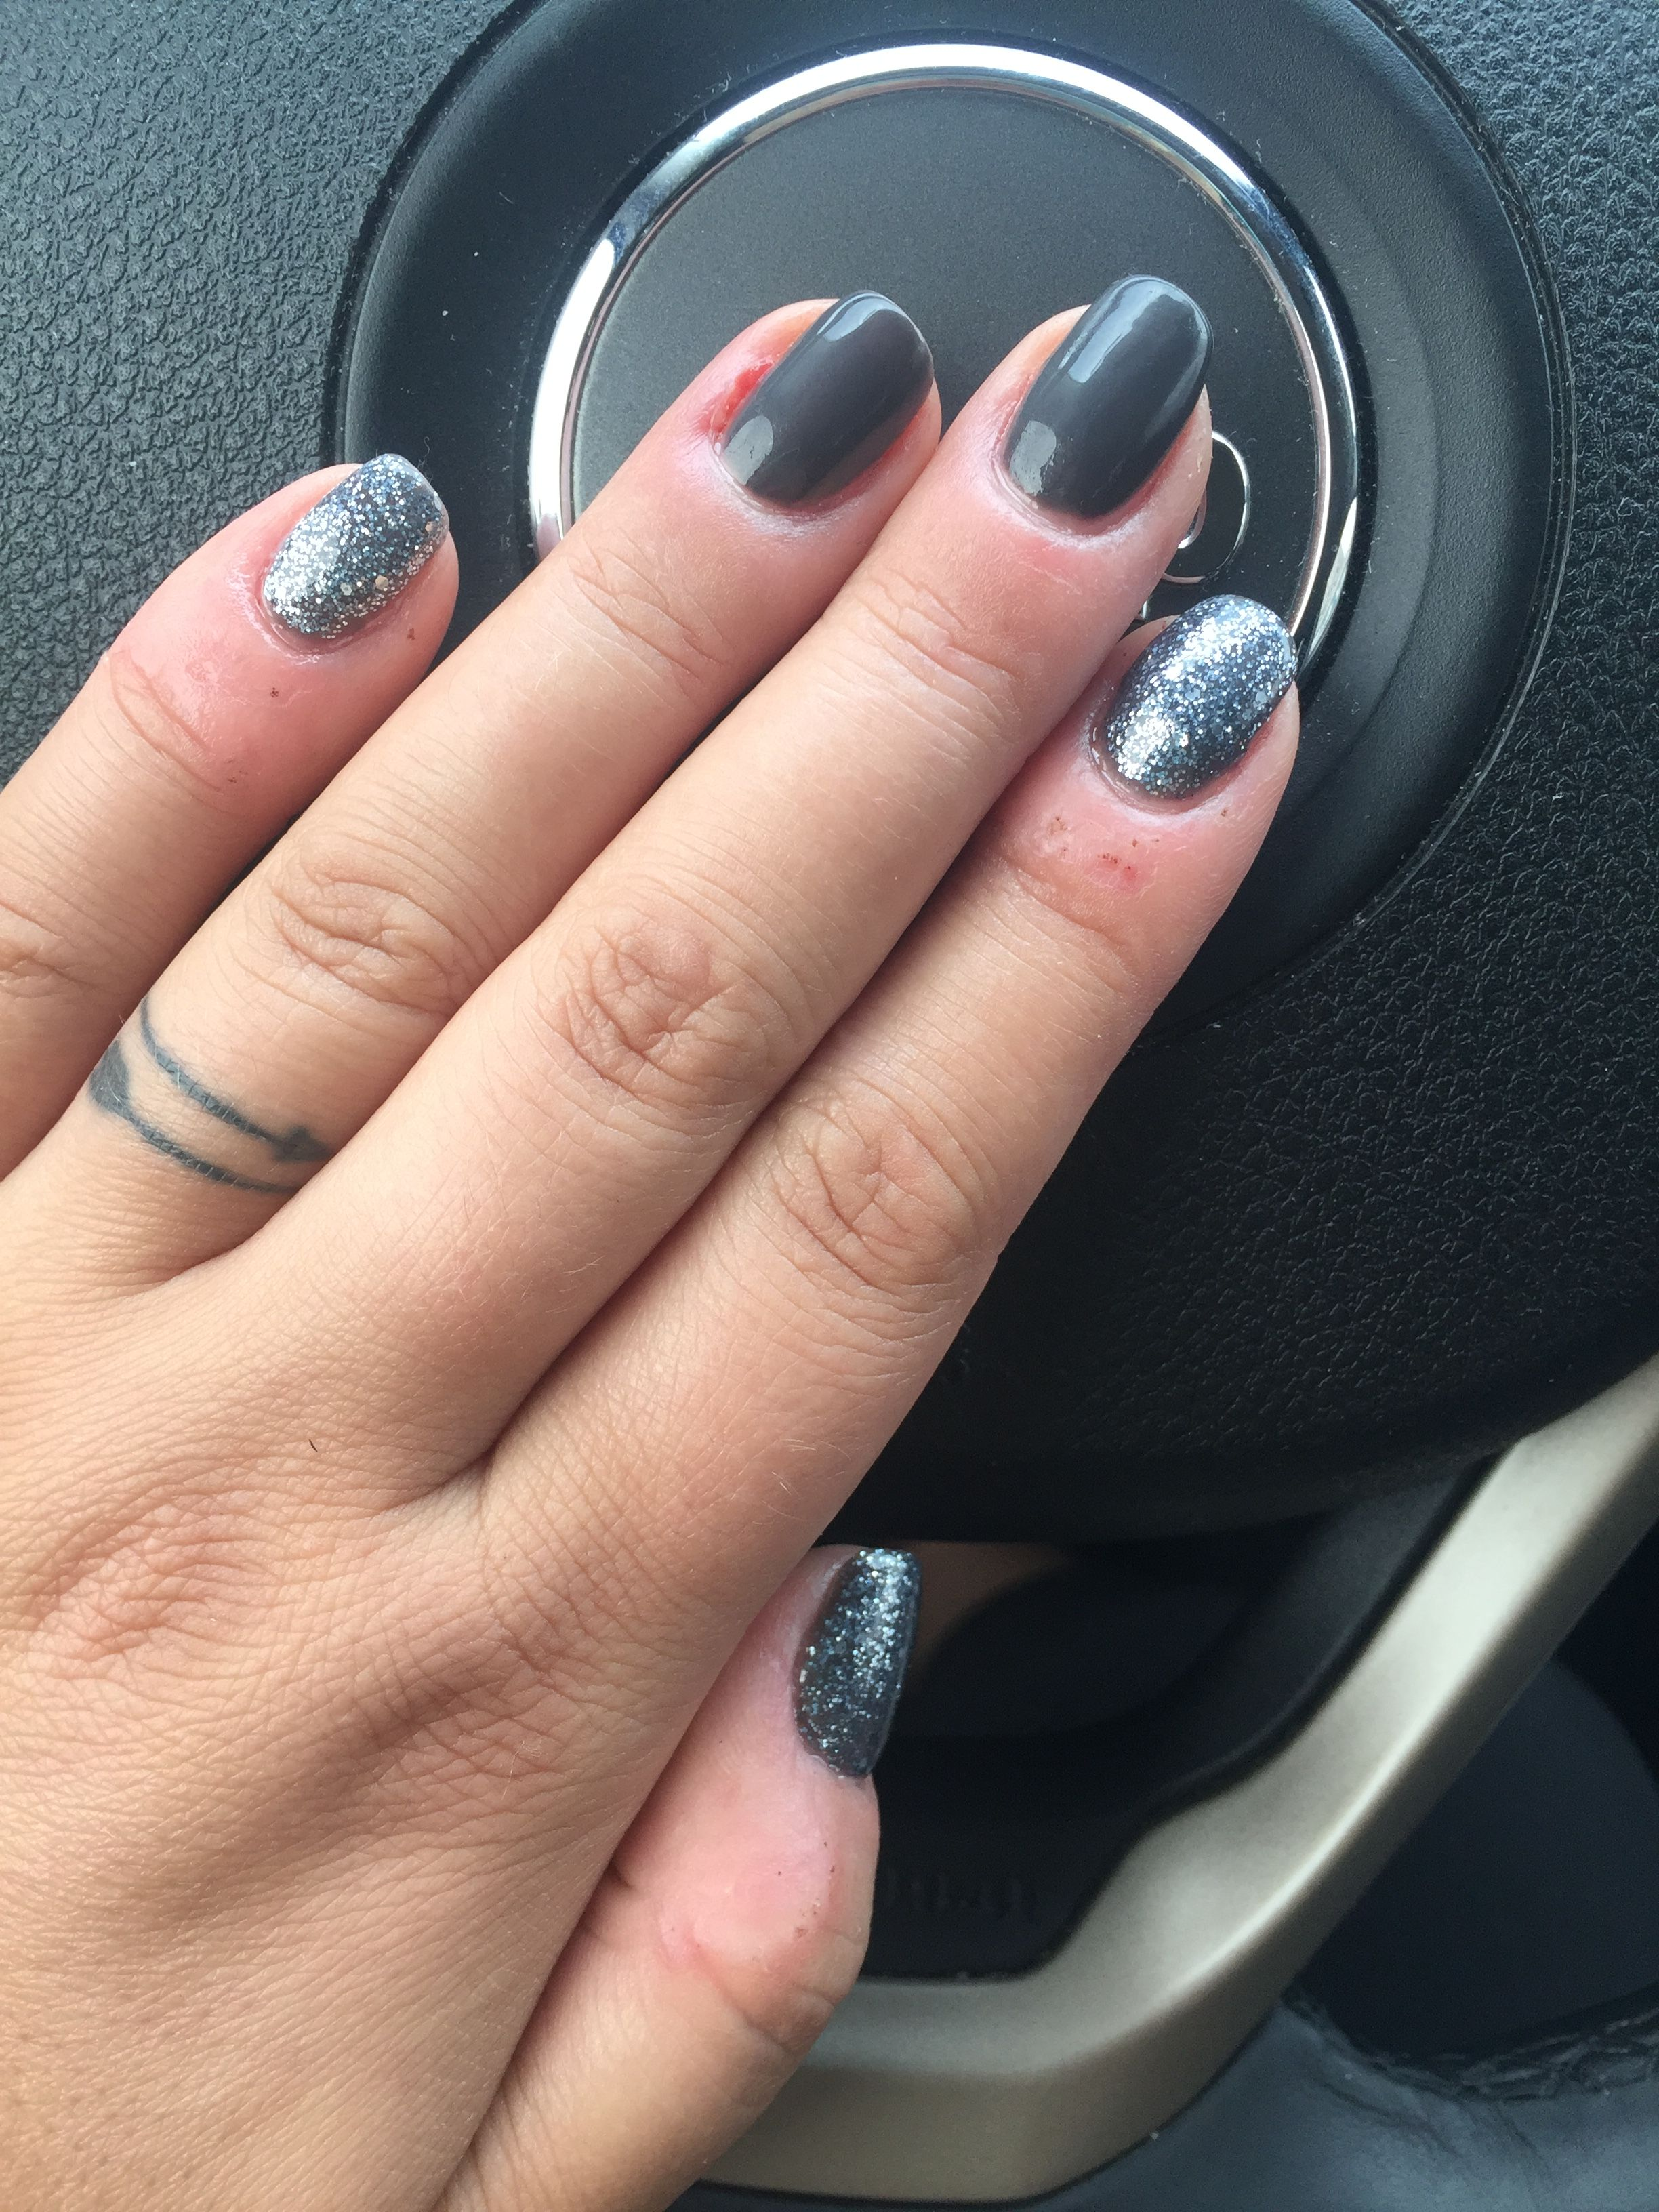 DND Deep Mystery and DND Black Diamond Star gel polishes for fall ...